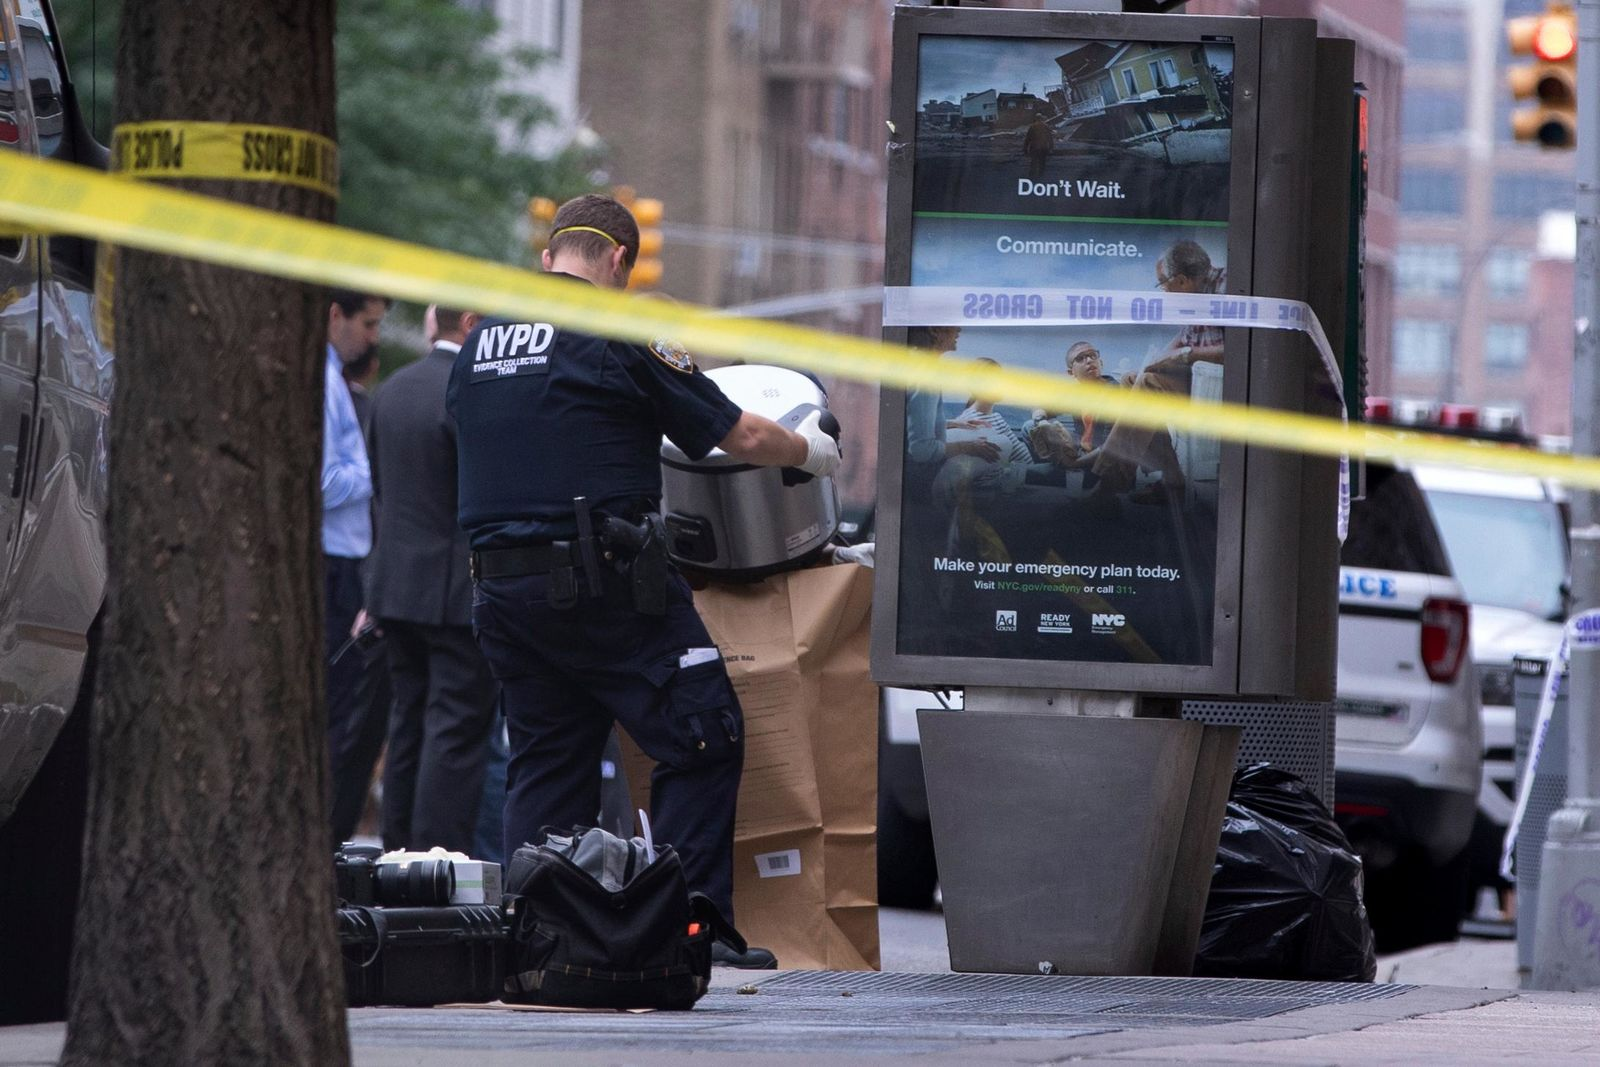 An investigator bags a suspicious package as evidence after it was thought to be an explosive device in Manhattan's Chelsea neighborhood Friday, Aug. 16, 2019, in New York. (AP Photo/Kevin Hagen).